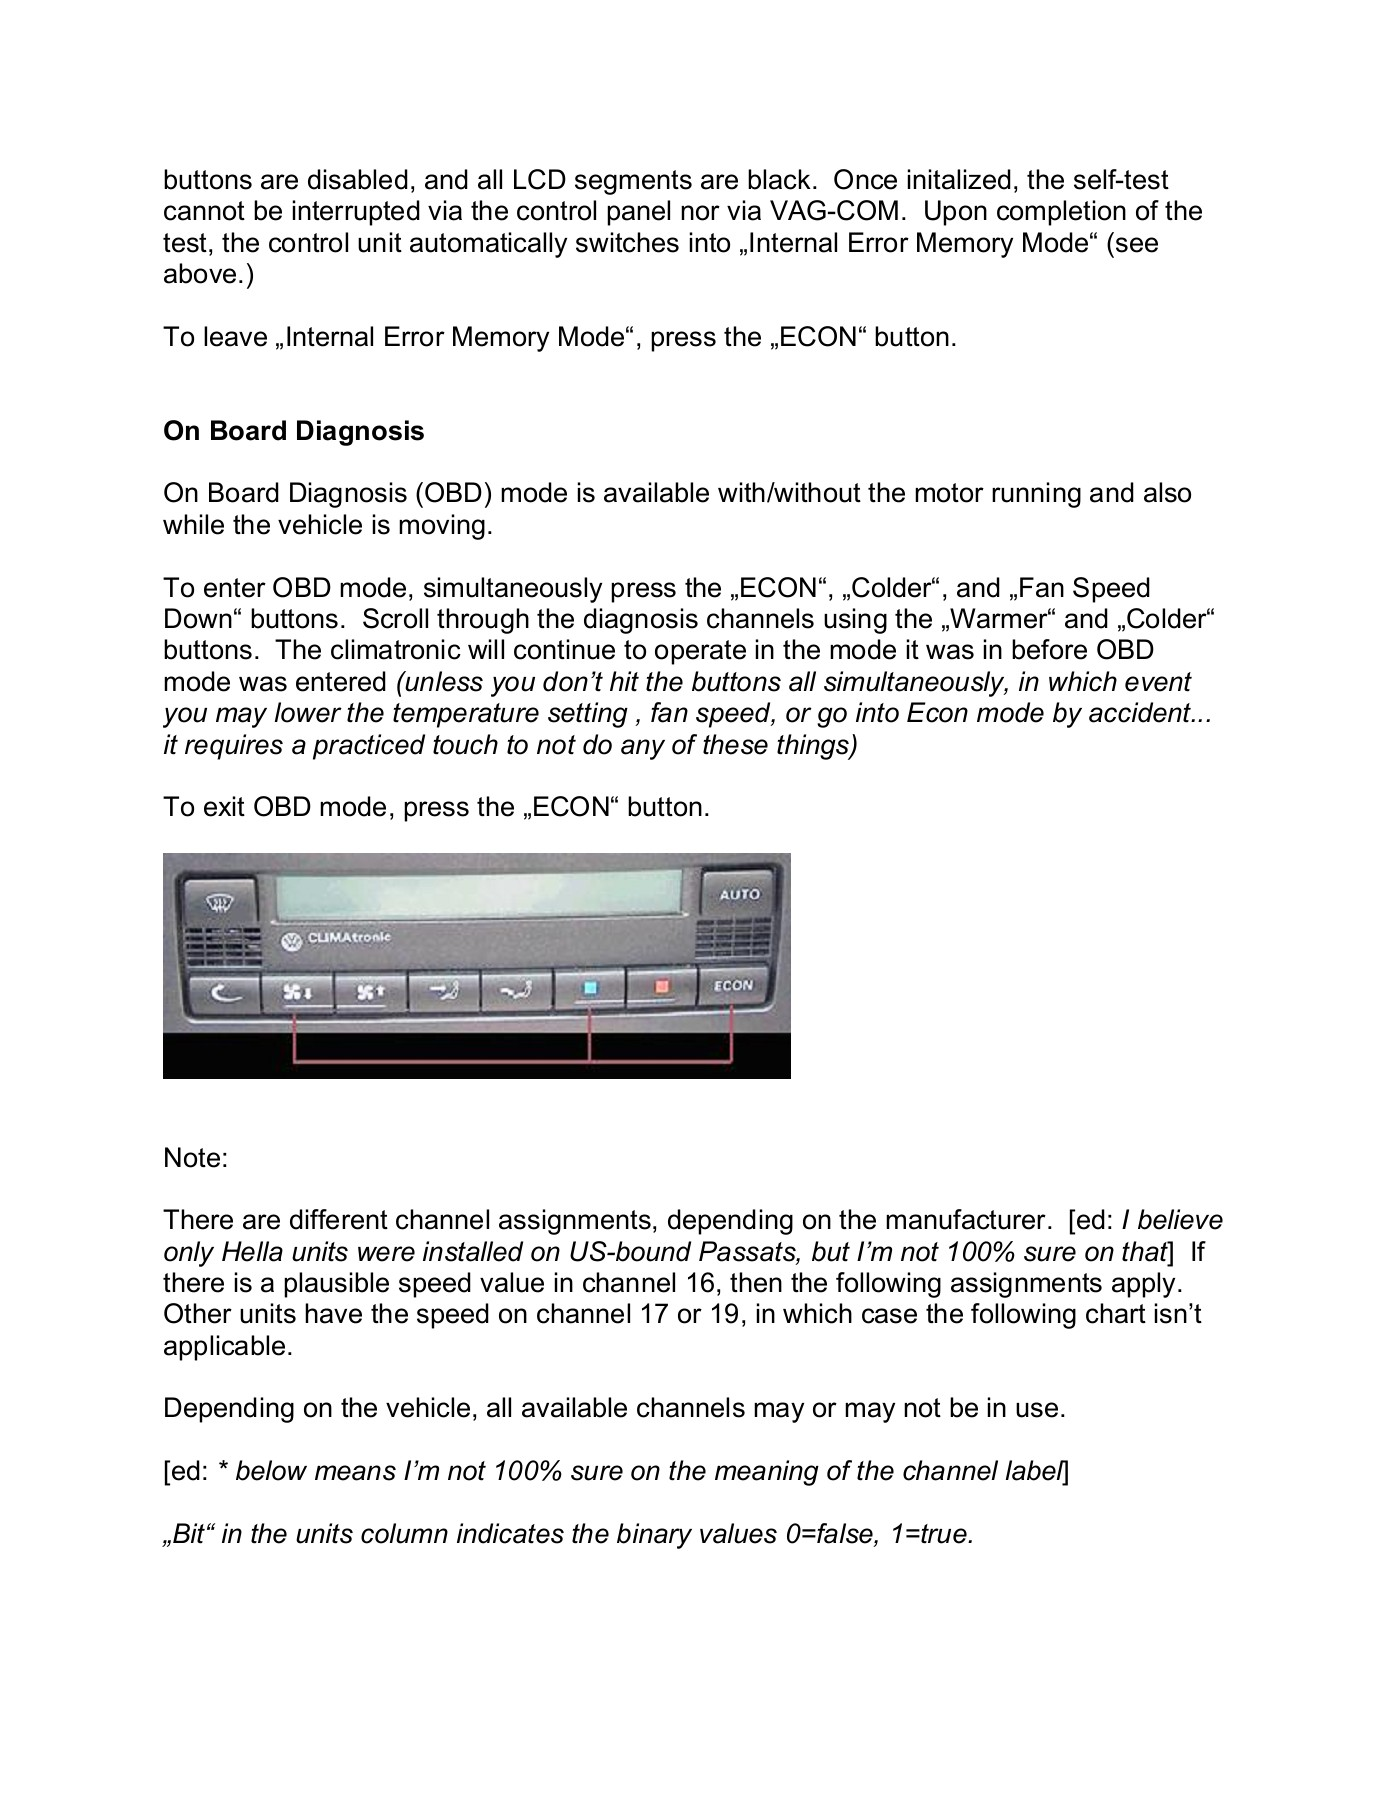 Self-Diagnostics on the VW Climatronic (by Hella) Pages 1 - 7 - Text